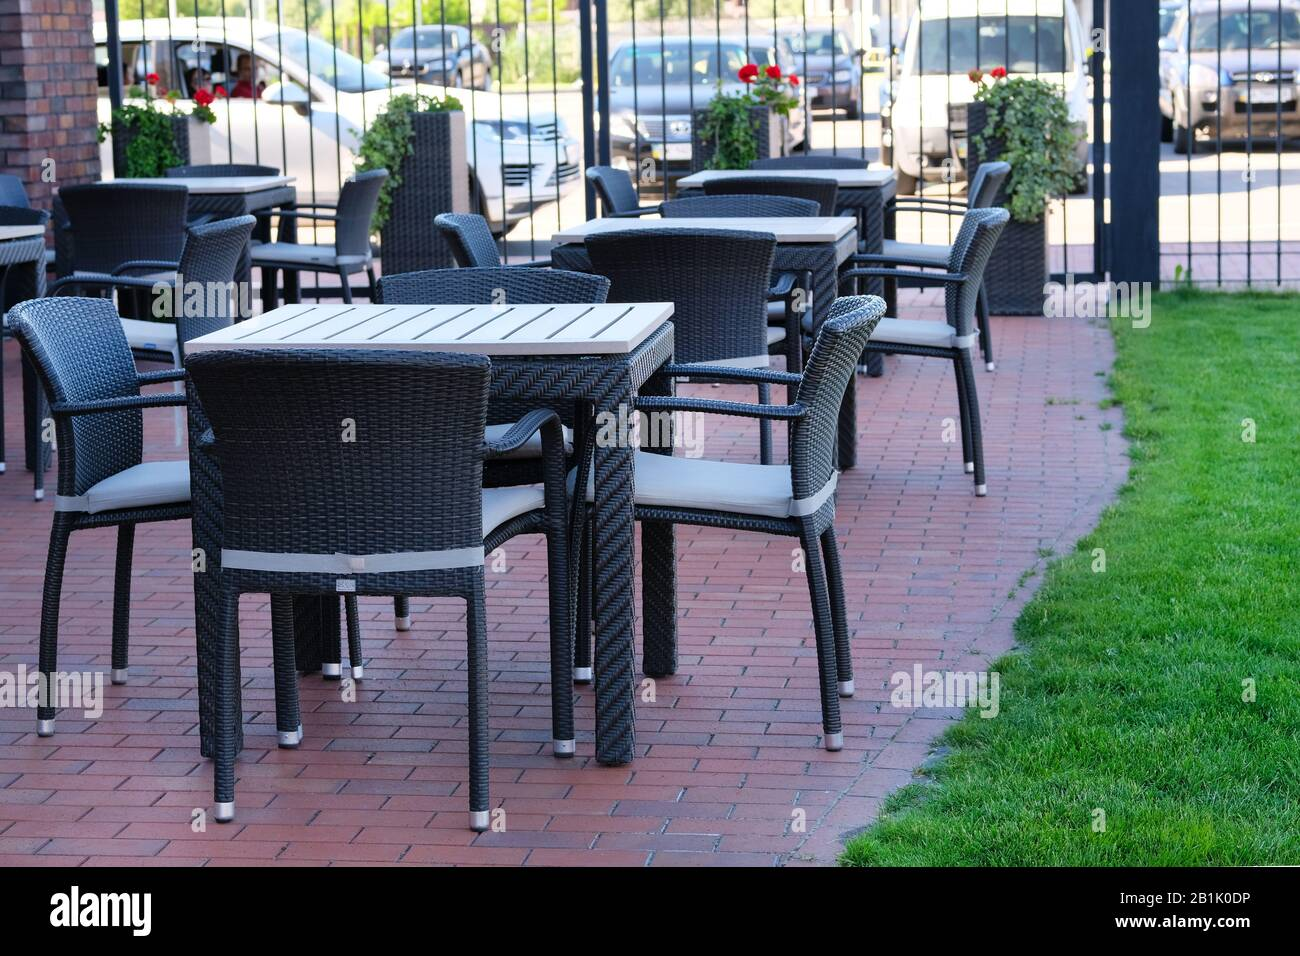 Outdoor Terrace Table Chairs High Resolution Stock Photography And Images Alamy